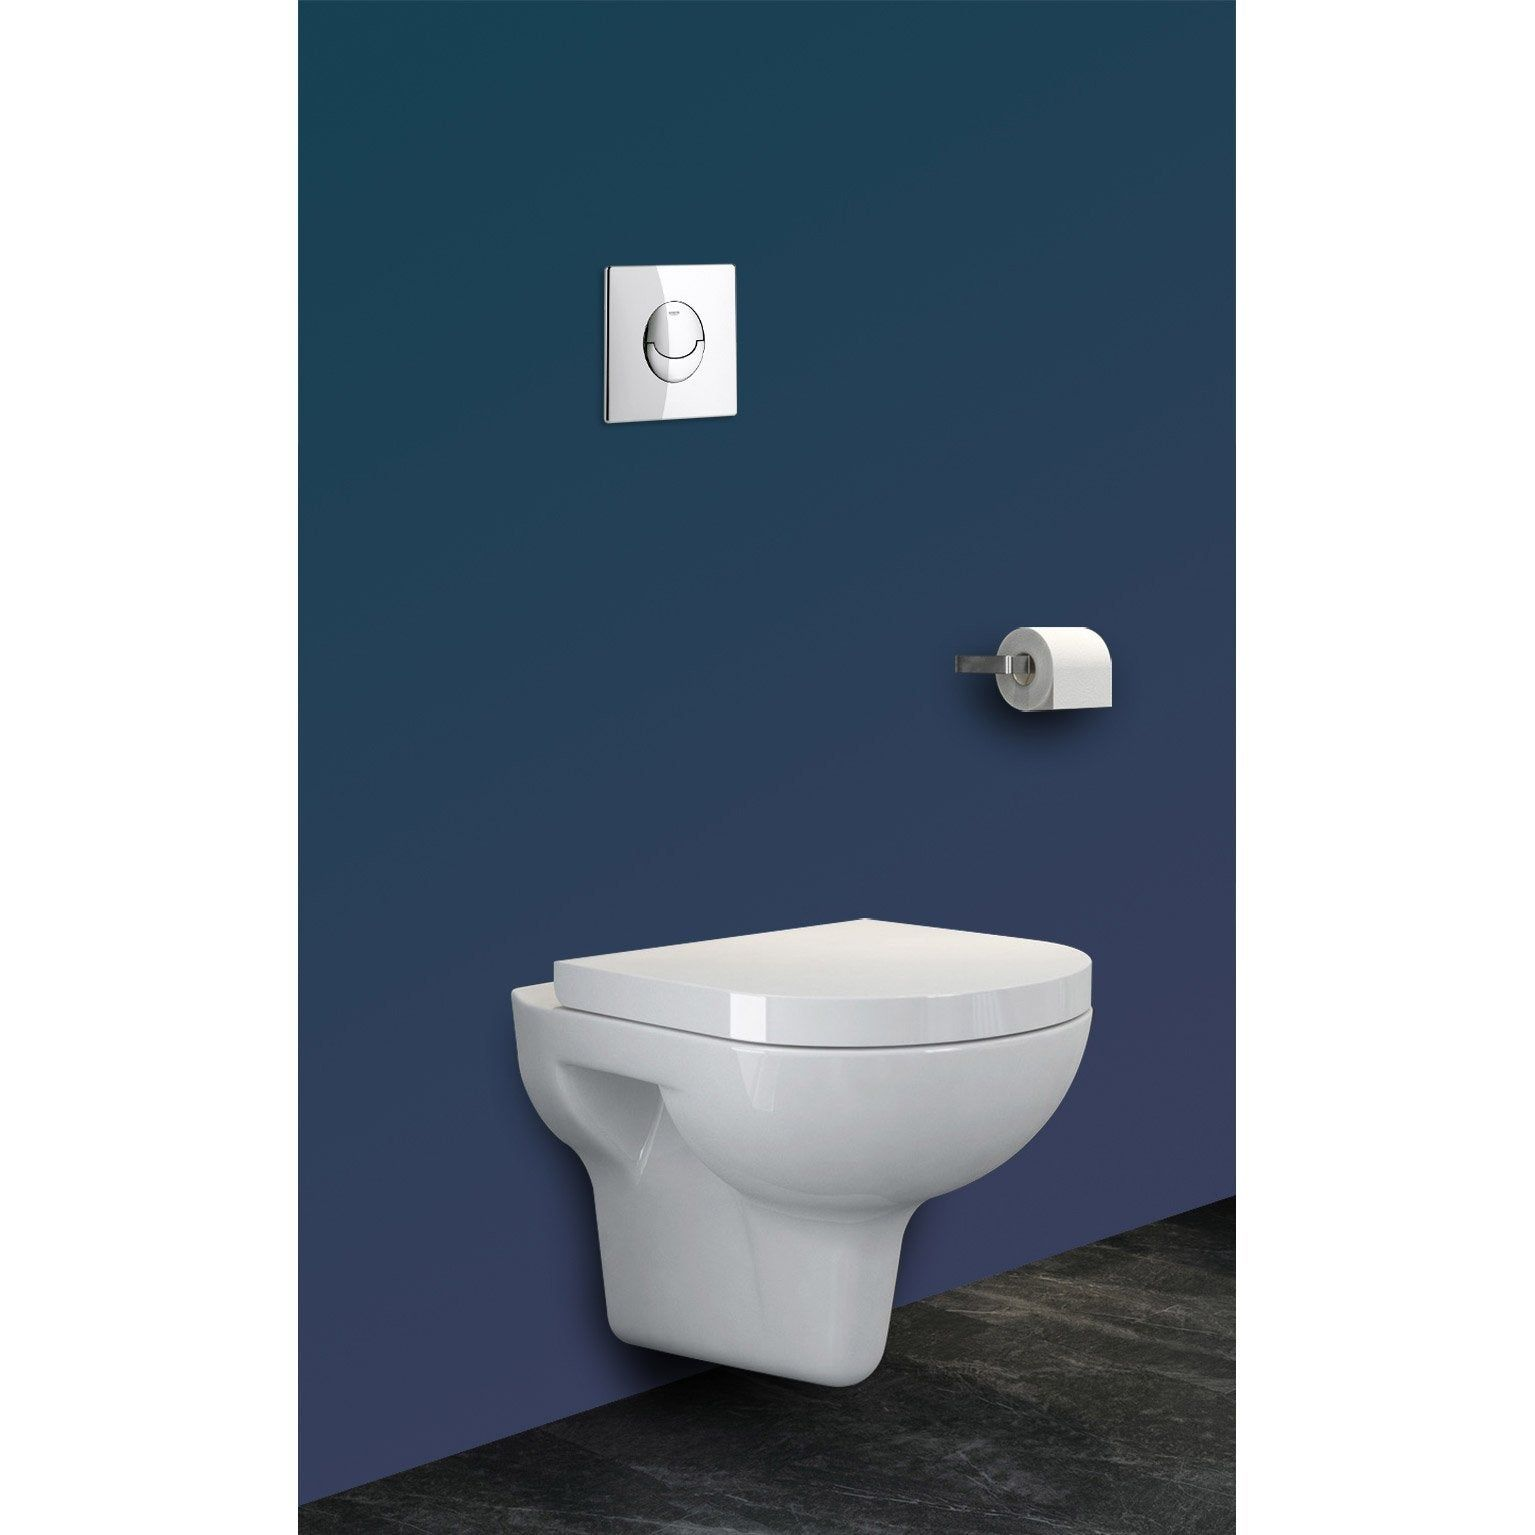 Pack Wc Suspendu Bati Mur Double Rapid Sl Et Velvet Chrome Grohe Concilio Pack Wc Suspendu Wc Suspendu Et Pack Wc